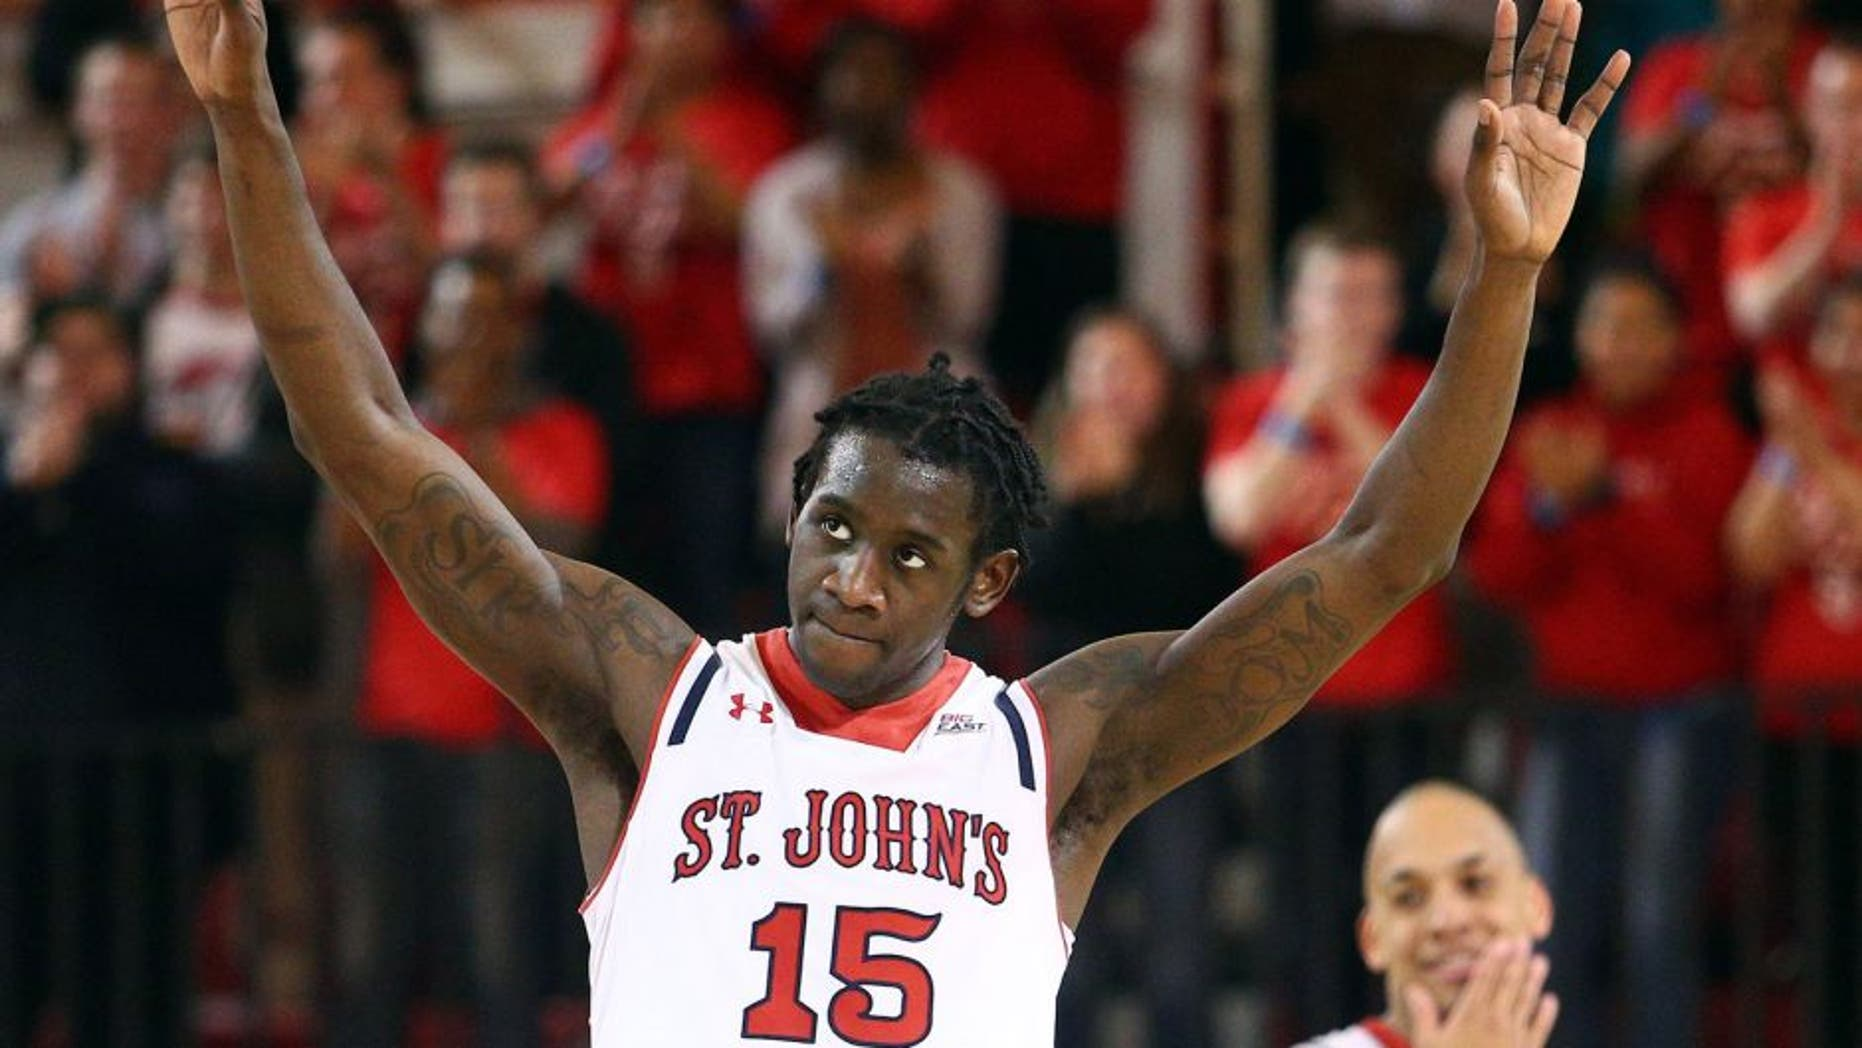 Feb 21, 2015; Jamaica, NY, USA; St. John's Red Storm guard Sir'Dominic Pointer (15) and guard D'Angelo Harrison (11) react during the second half against the Seton Hall Pirates at Carnesecca Arena. Mandatory Credit: Brad Penner-USA TODAY Sports